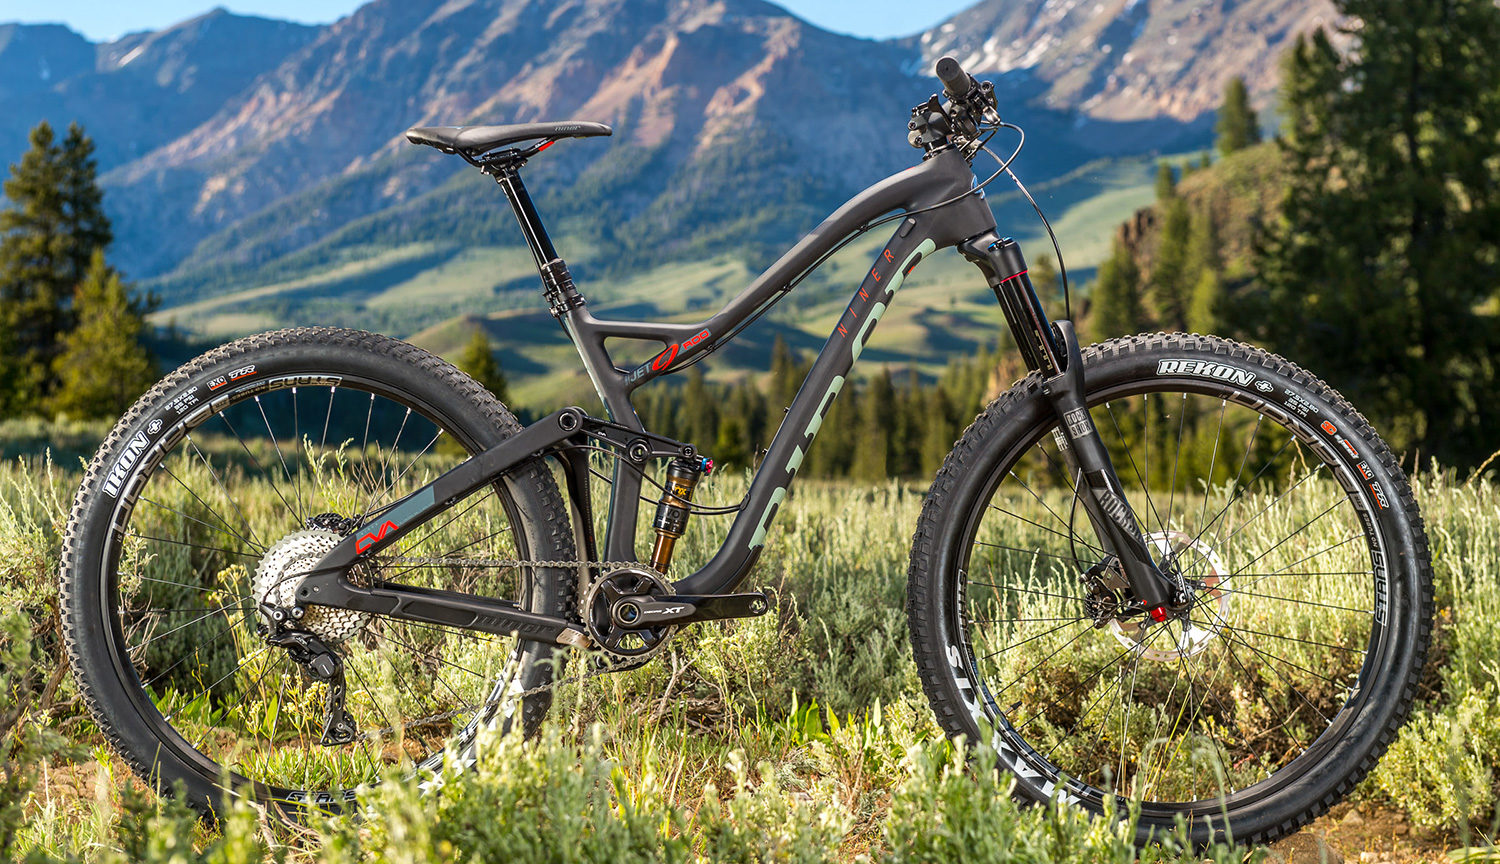 Niner Reboots Jet 9 RDO and Rip 9 RDO Models with Refreshed Geometry and 27.5+ Build Options